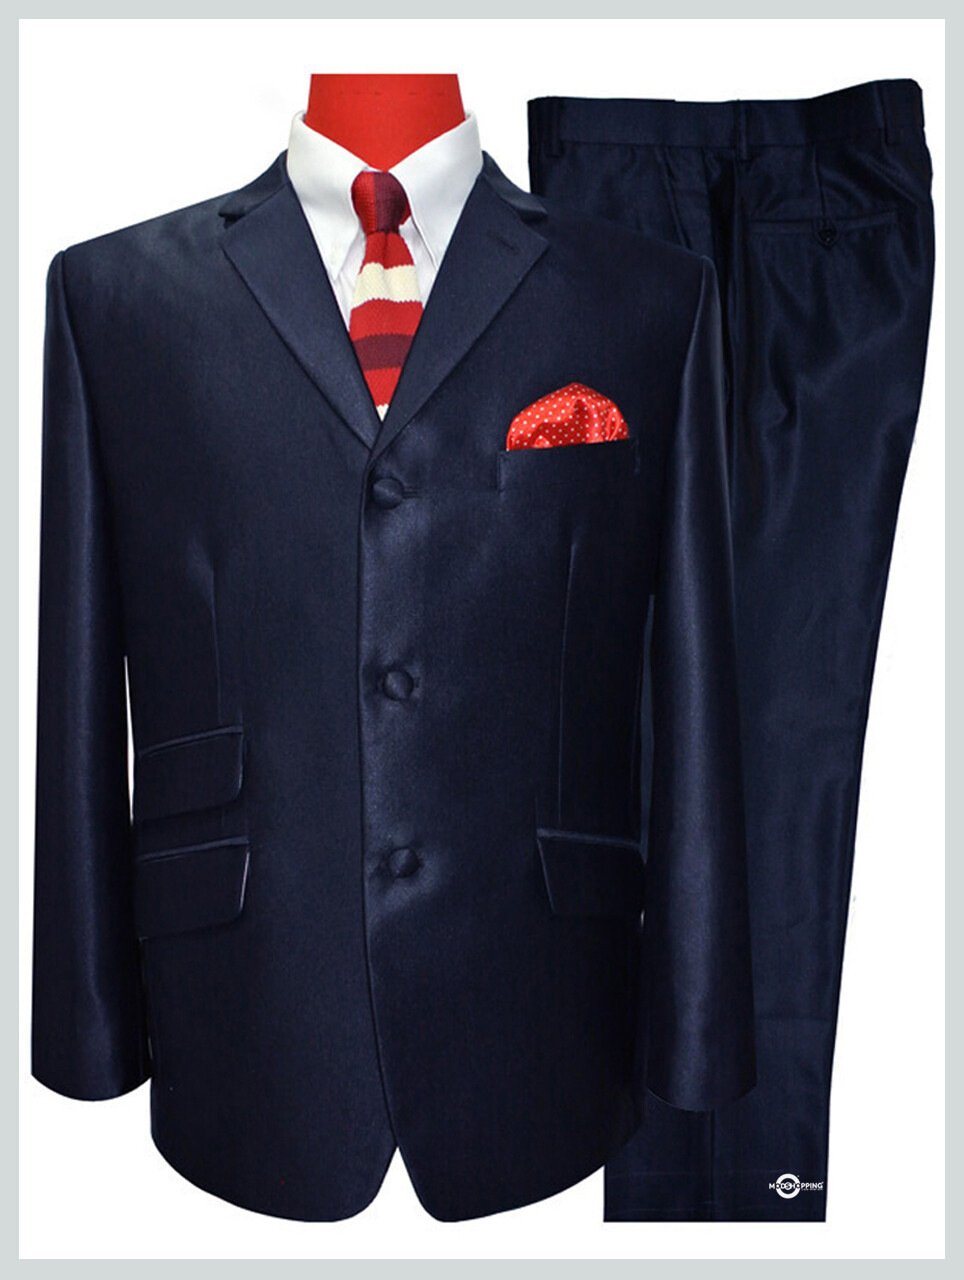 tonic suit|dark navy blue mod tonic suit for men